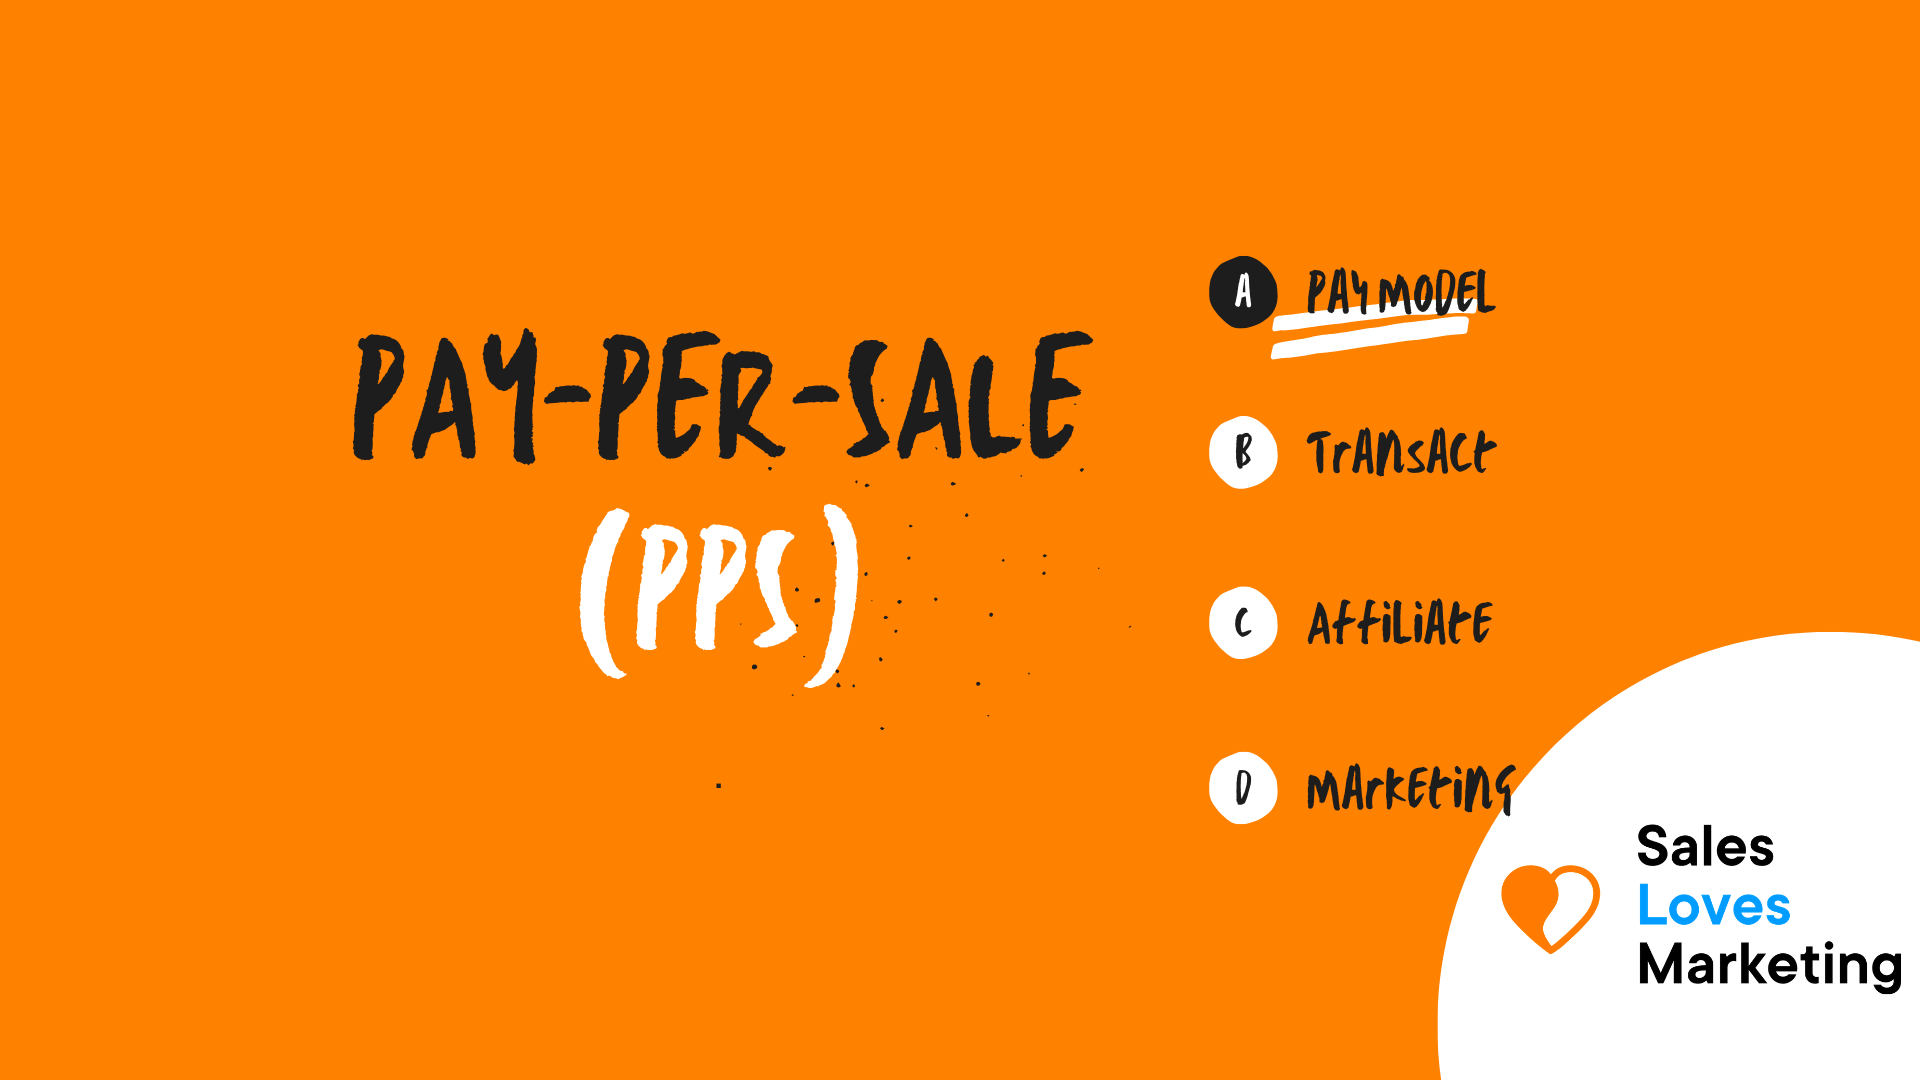 Pay Per Sale (PPS)